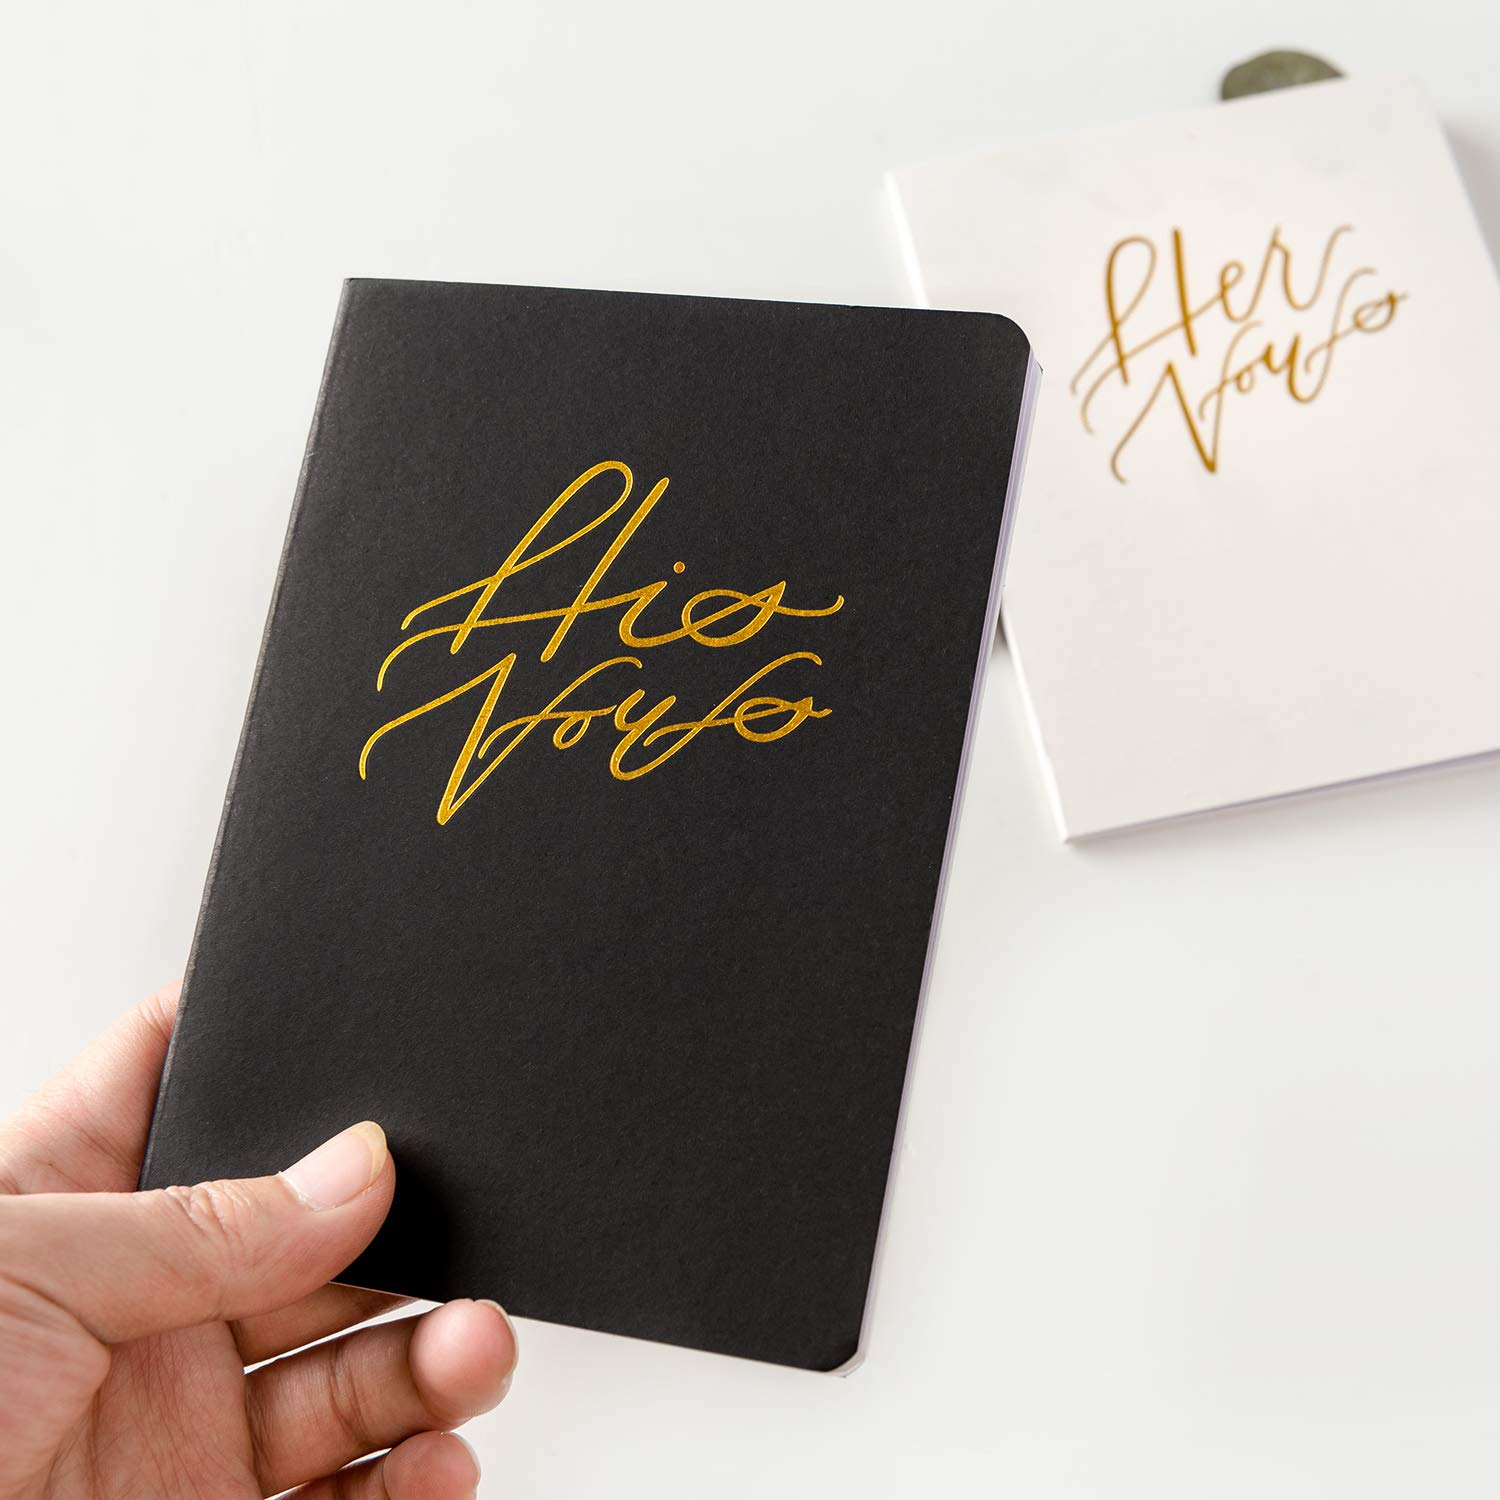 Calculs Wedding Vow Book His & Her Vows with Gold Texture Set of 2 Bridal Shower Gifts